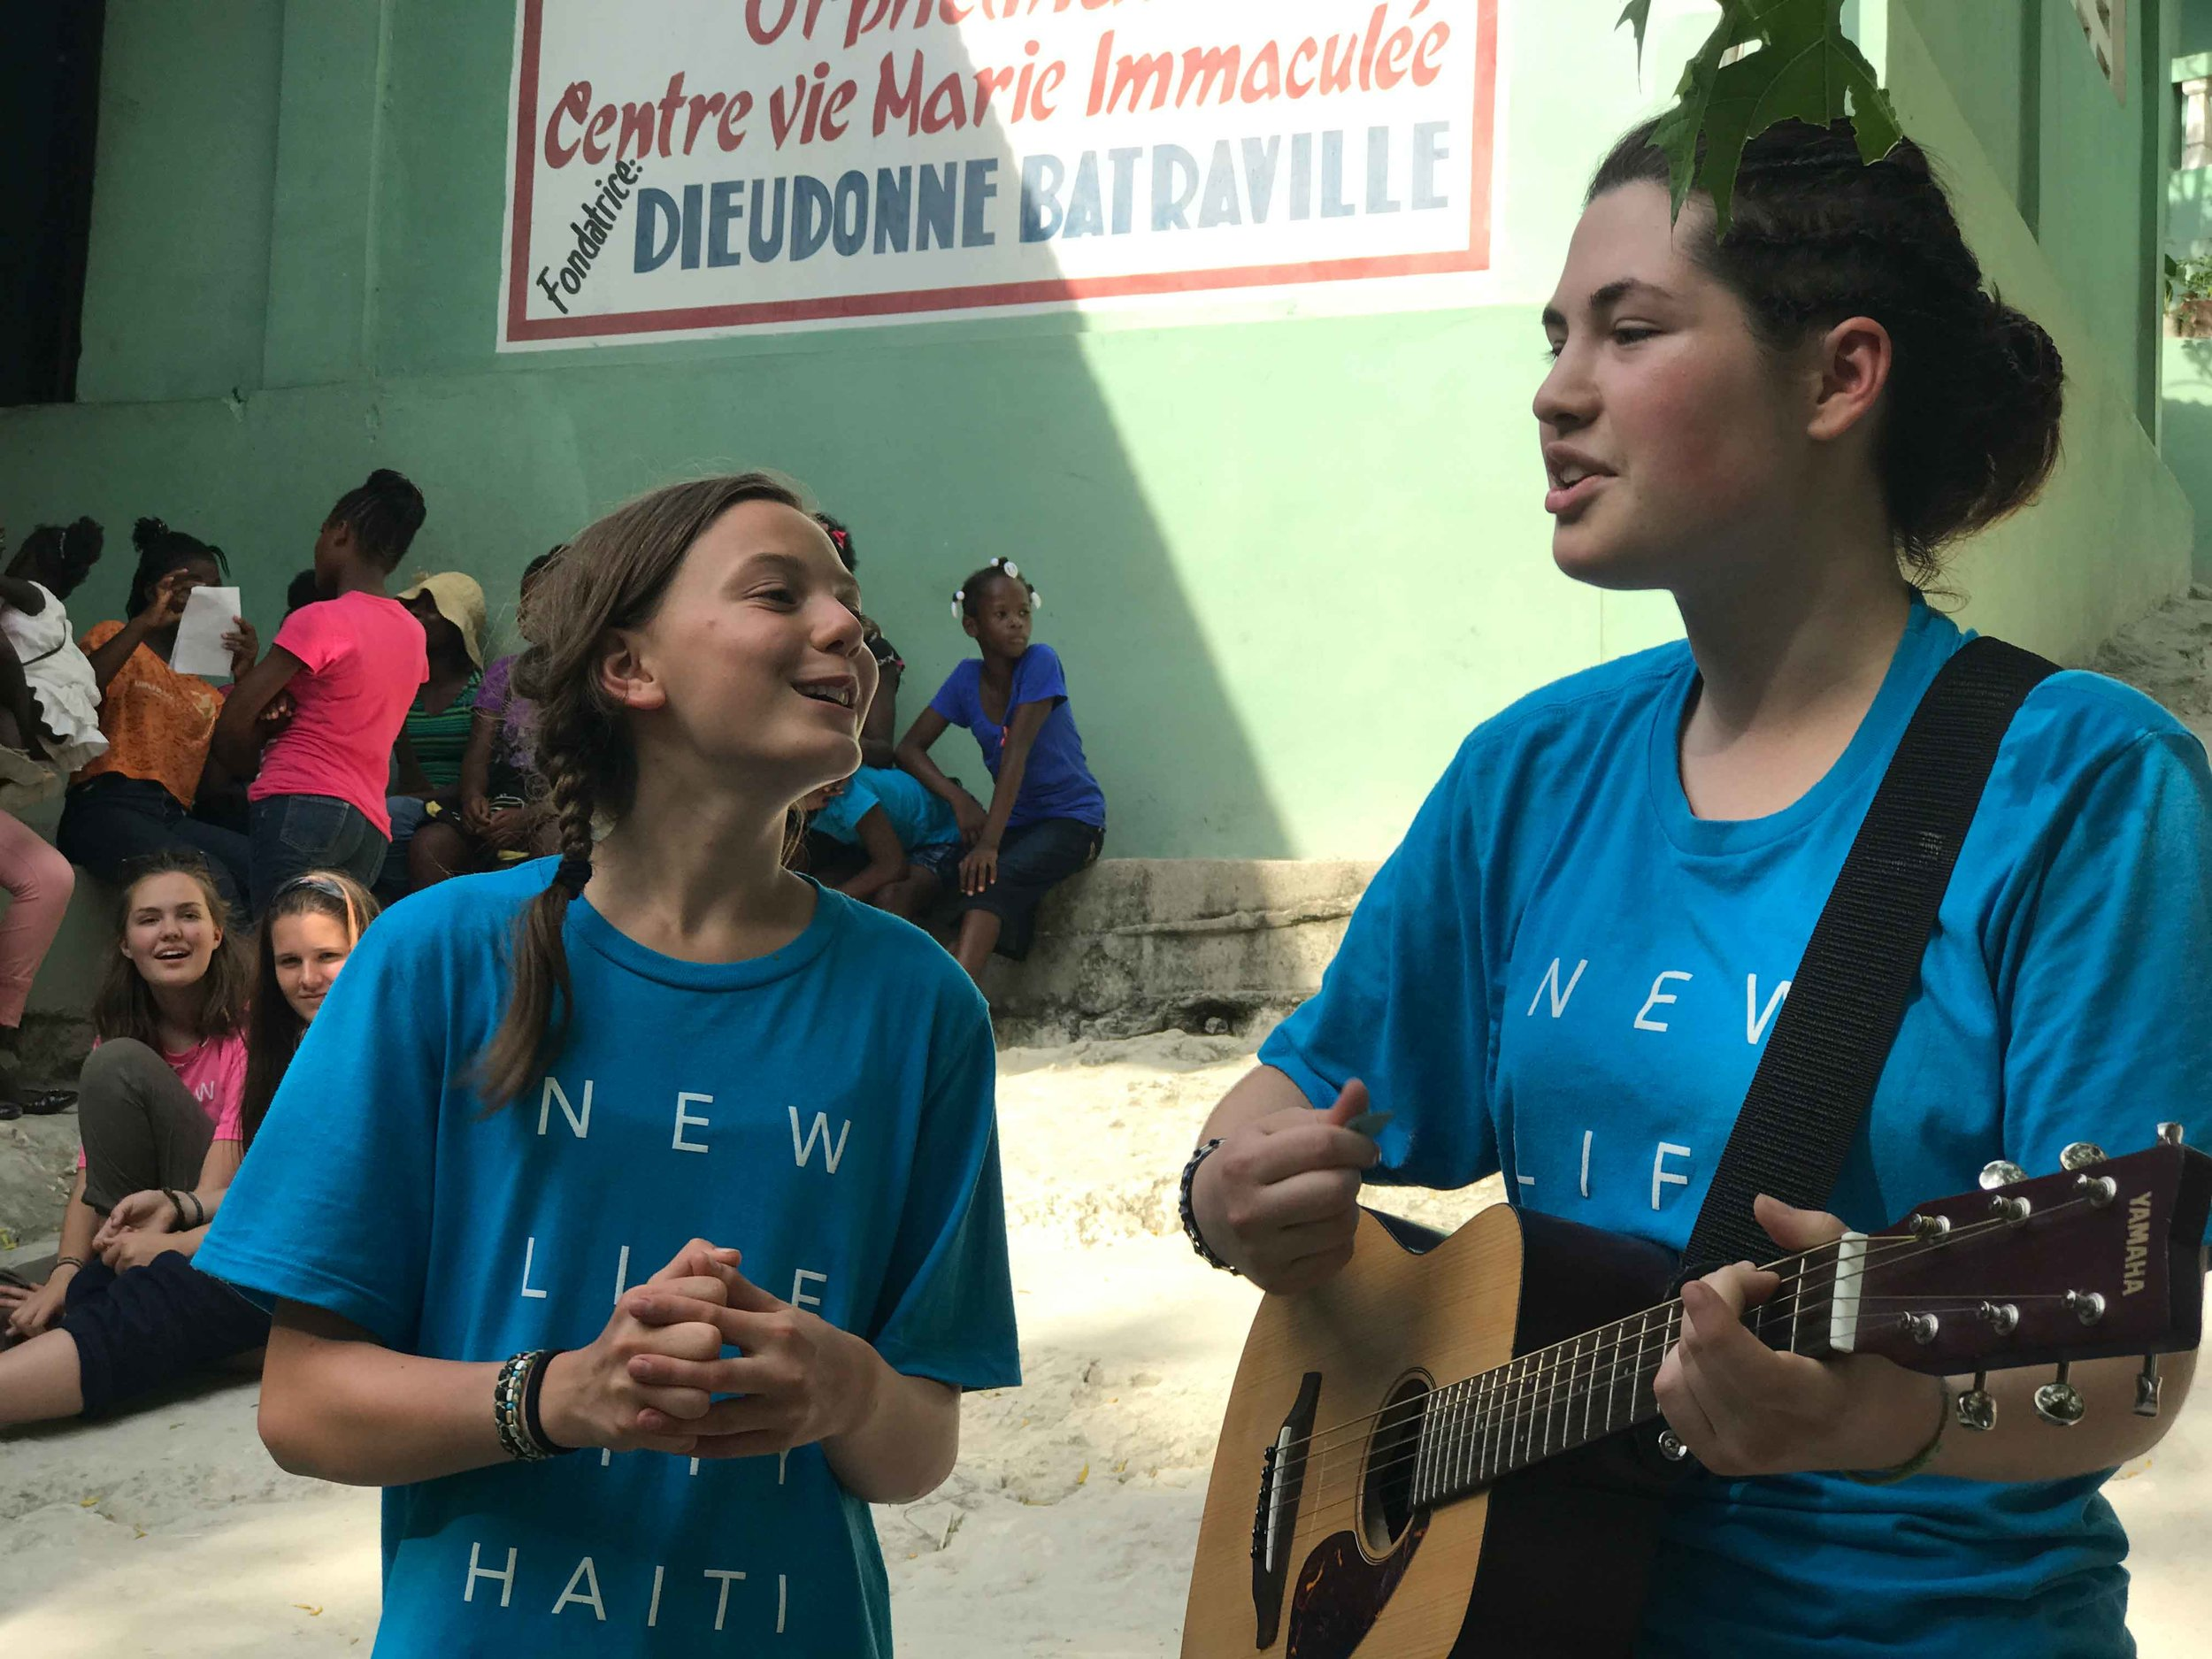 Two City Youth girls on outreach in Haiti singing with a guitar